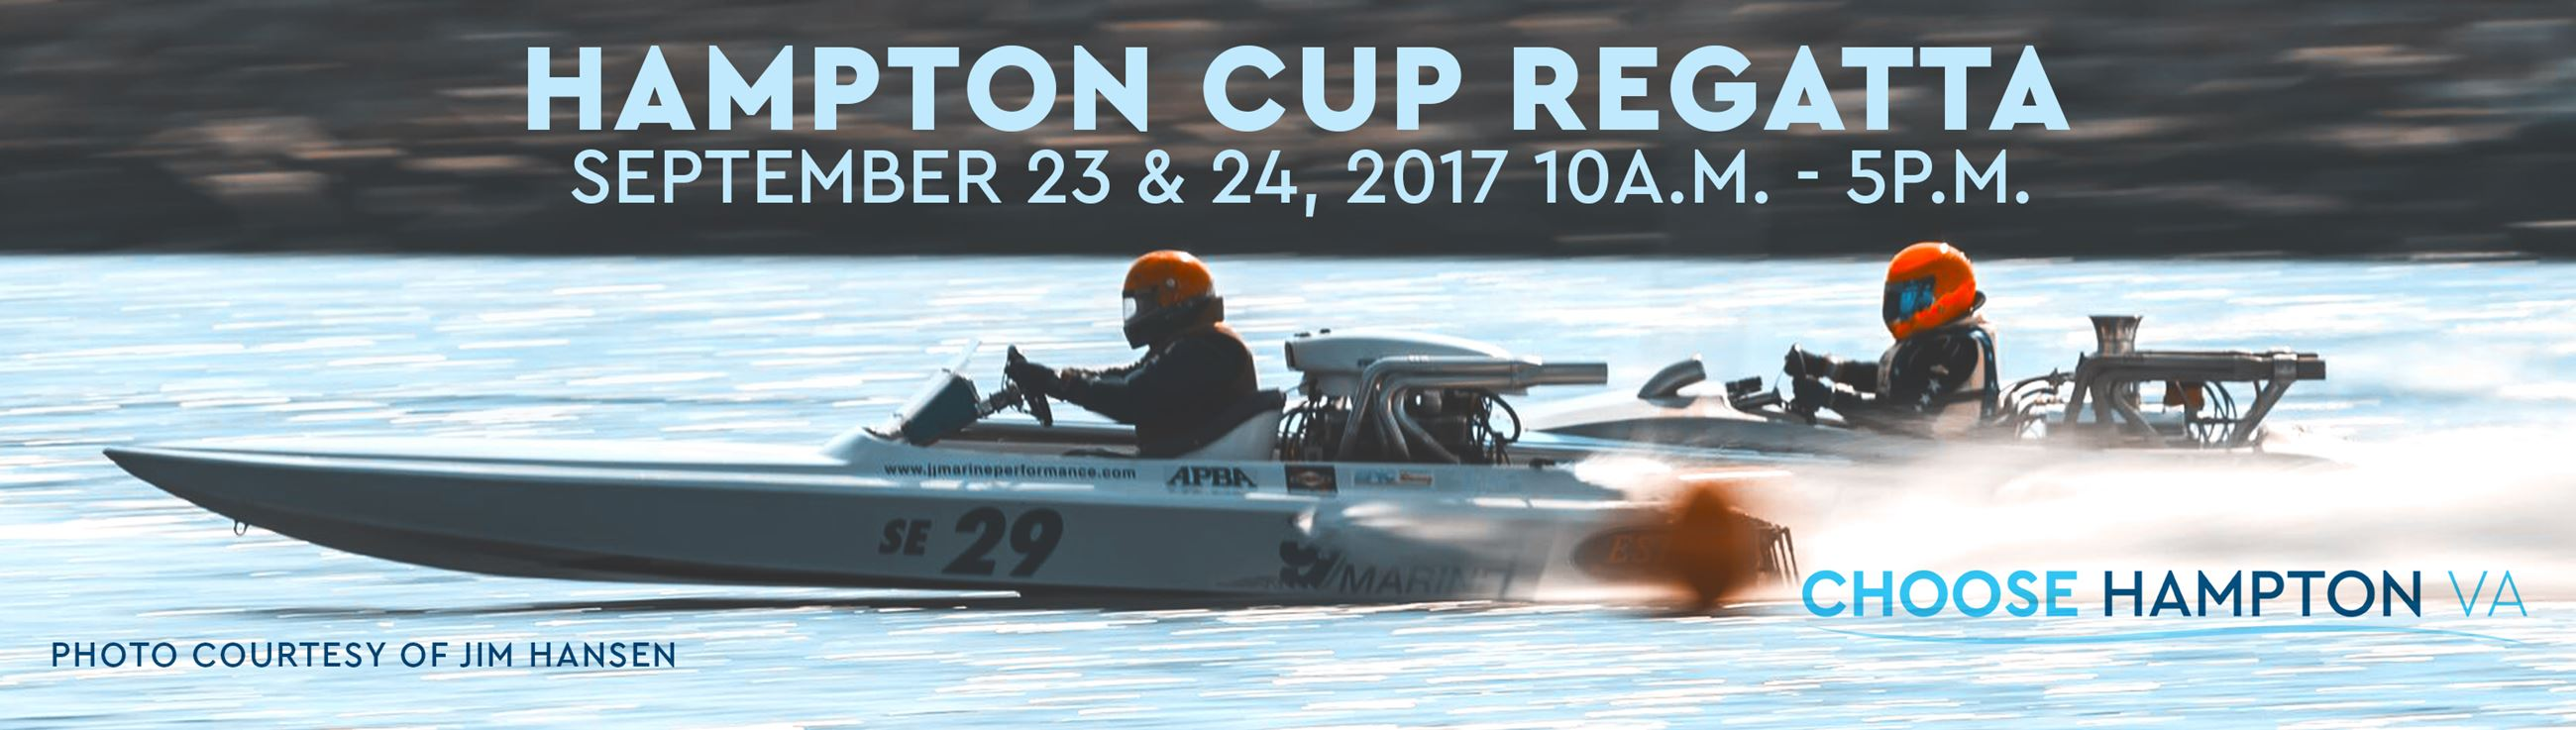 Hampton Cup Regatta